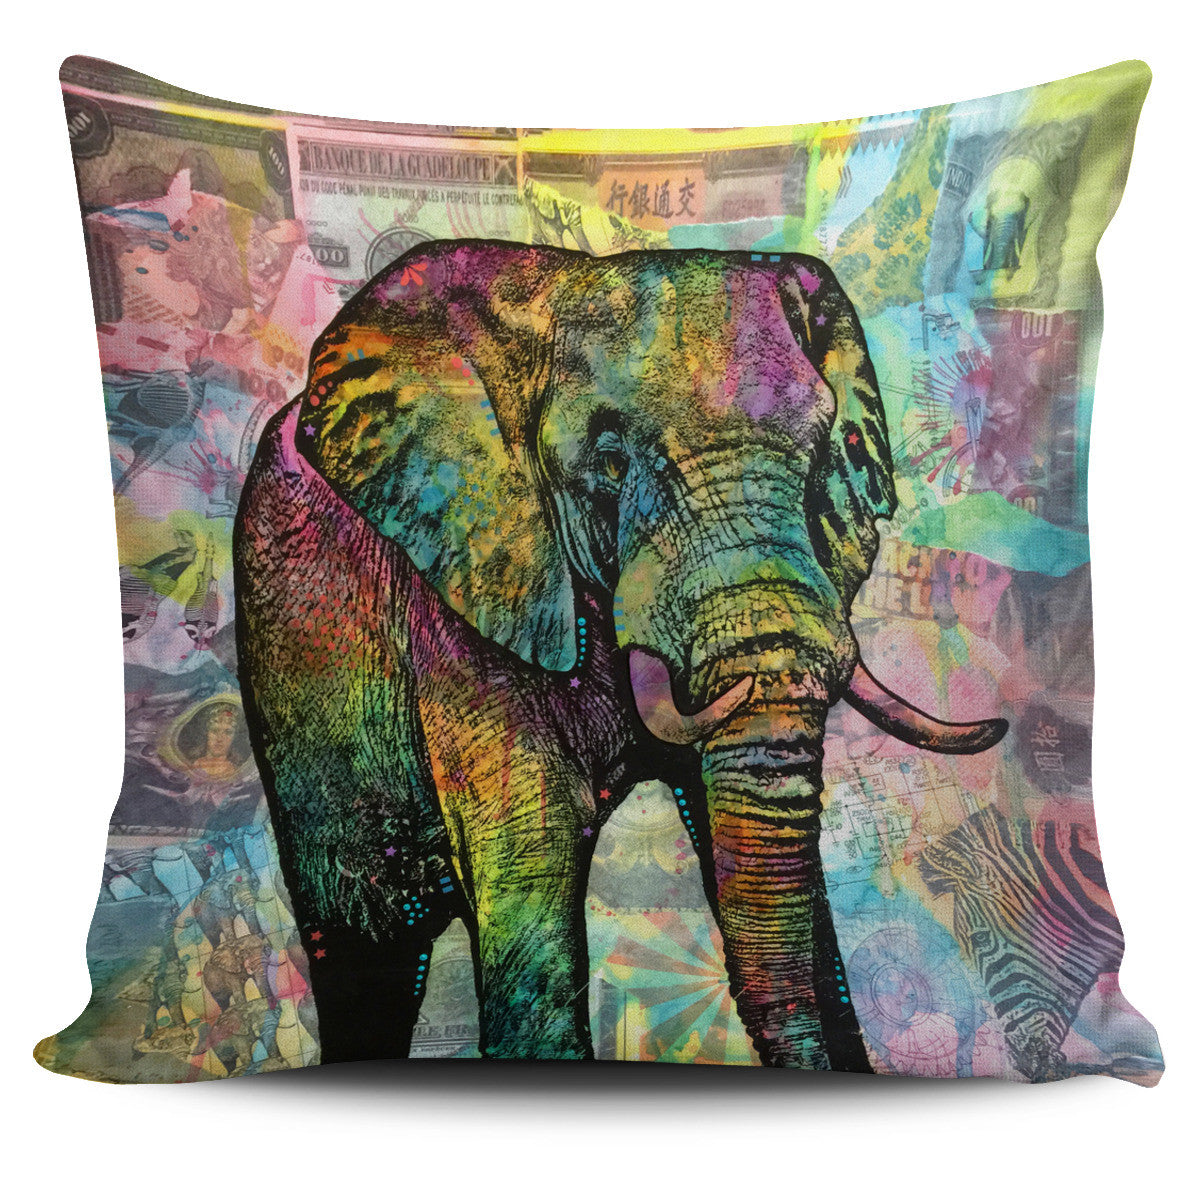 Safari Series Pillow Covers Offer